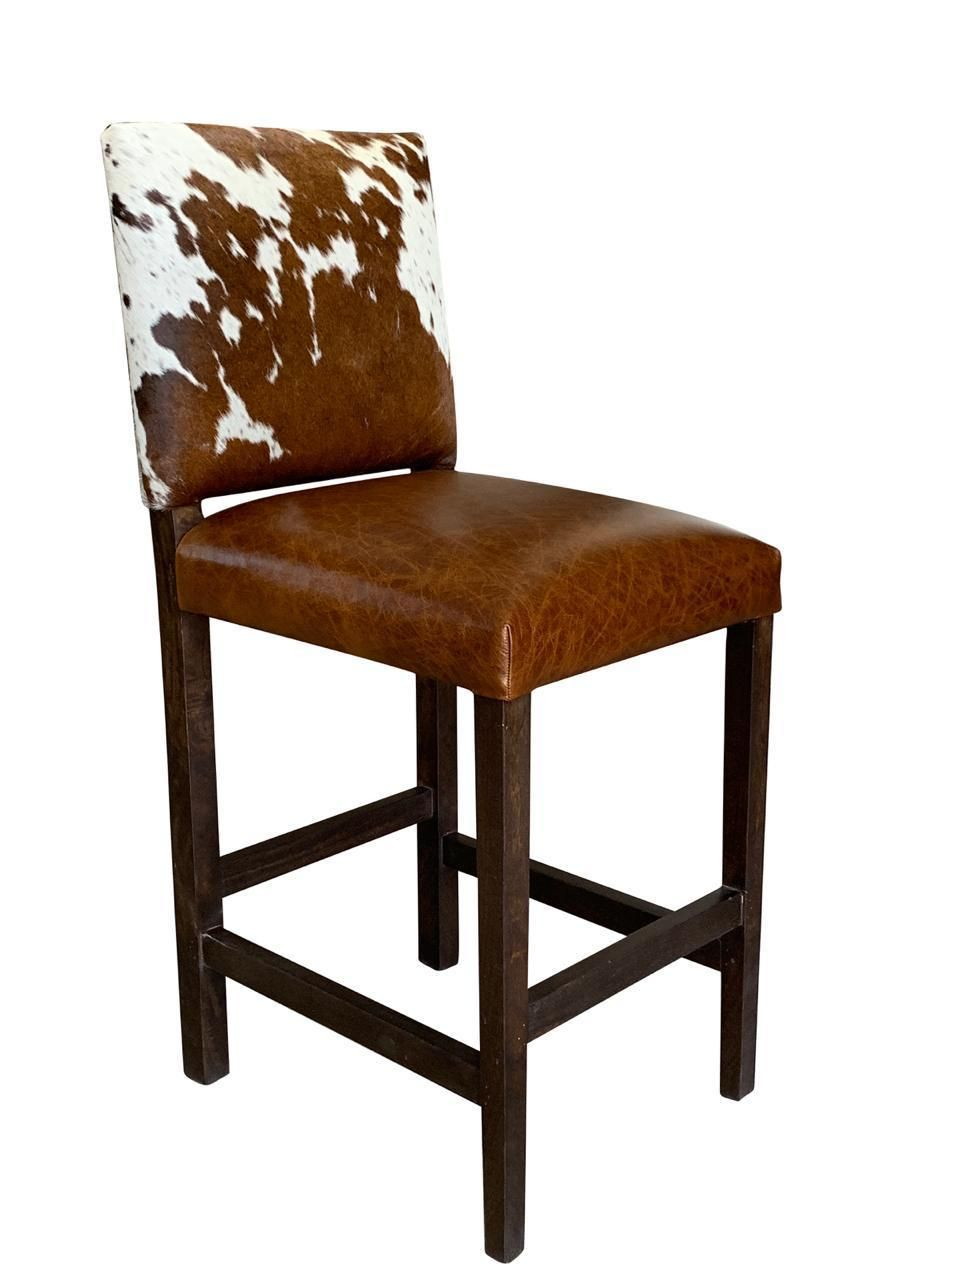 Cowhide Chairs Cowhide Bar Stools Cowhide Ottomans John Proffitt Cowhide Bar Stools Cowhide Chair Counter Stools With Backs